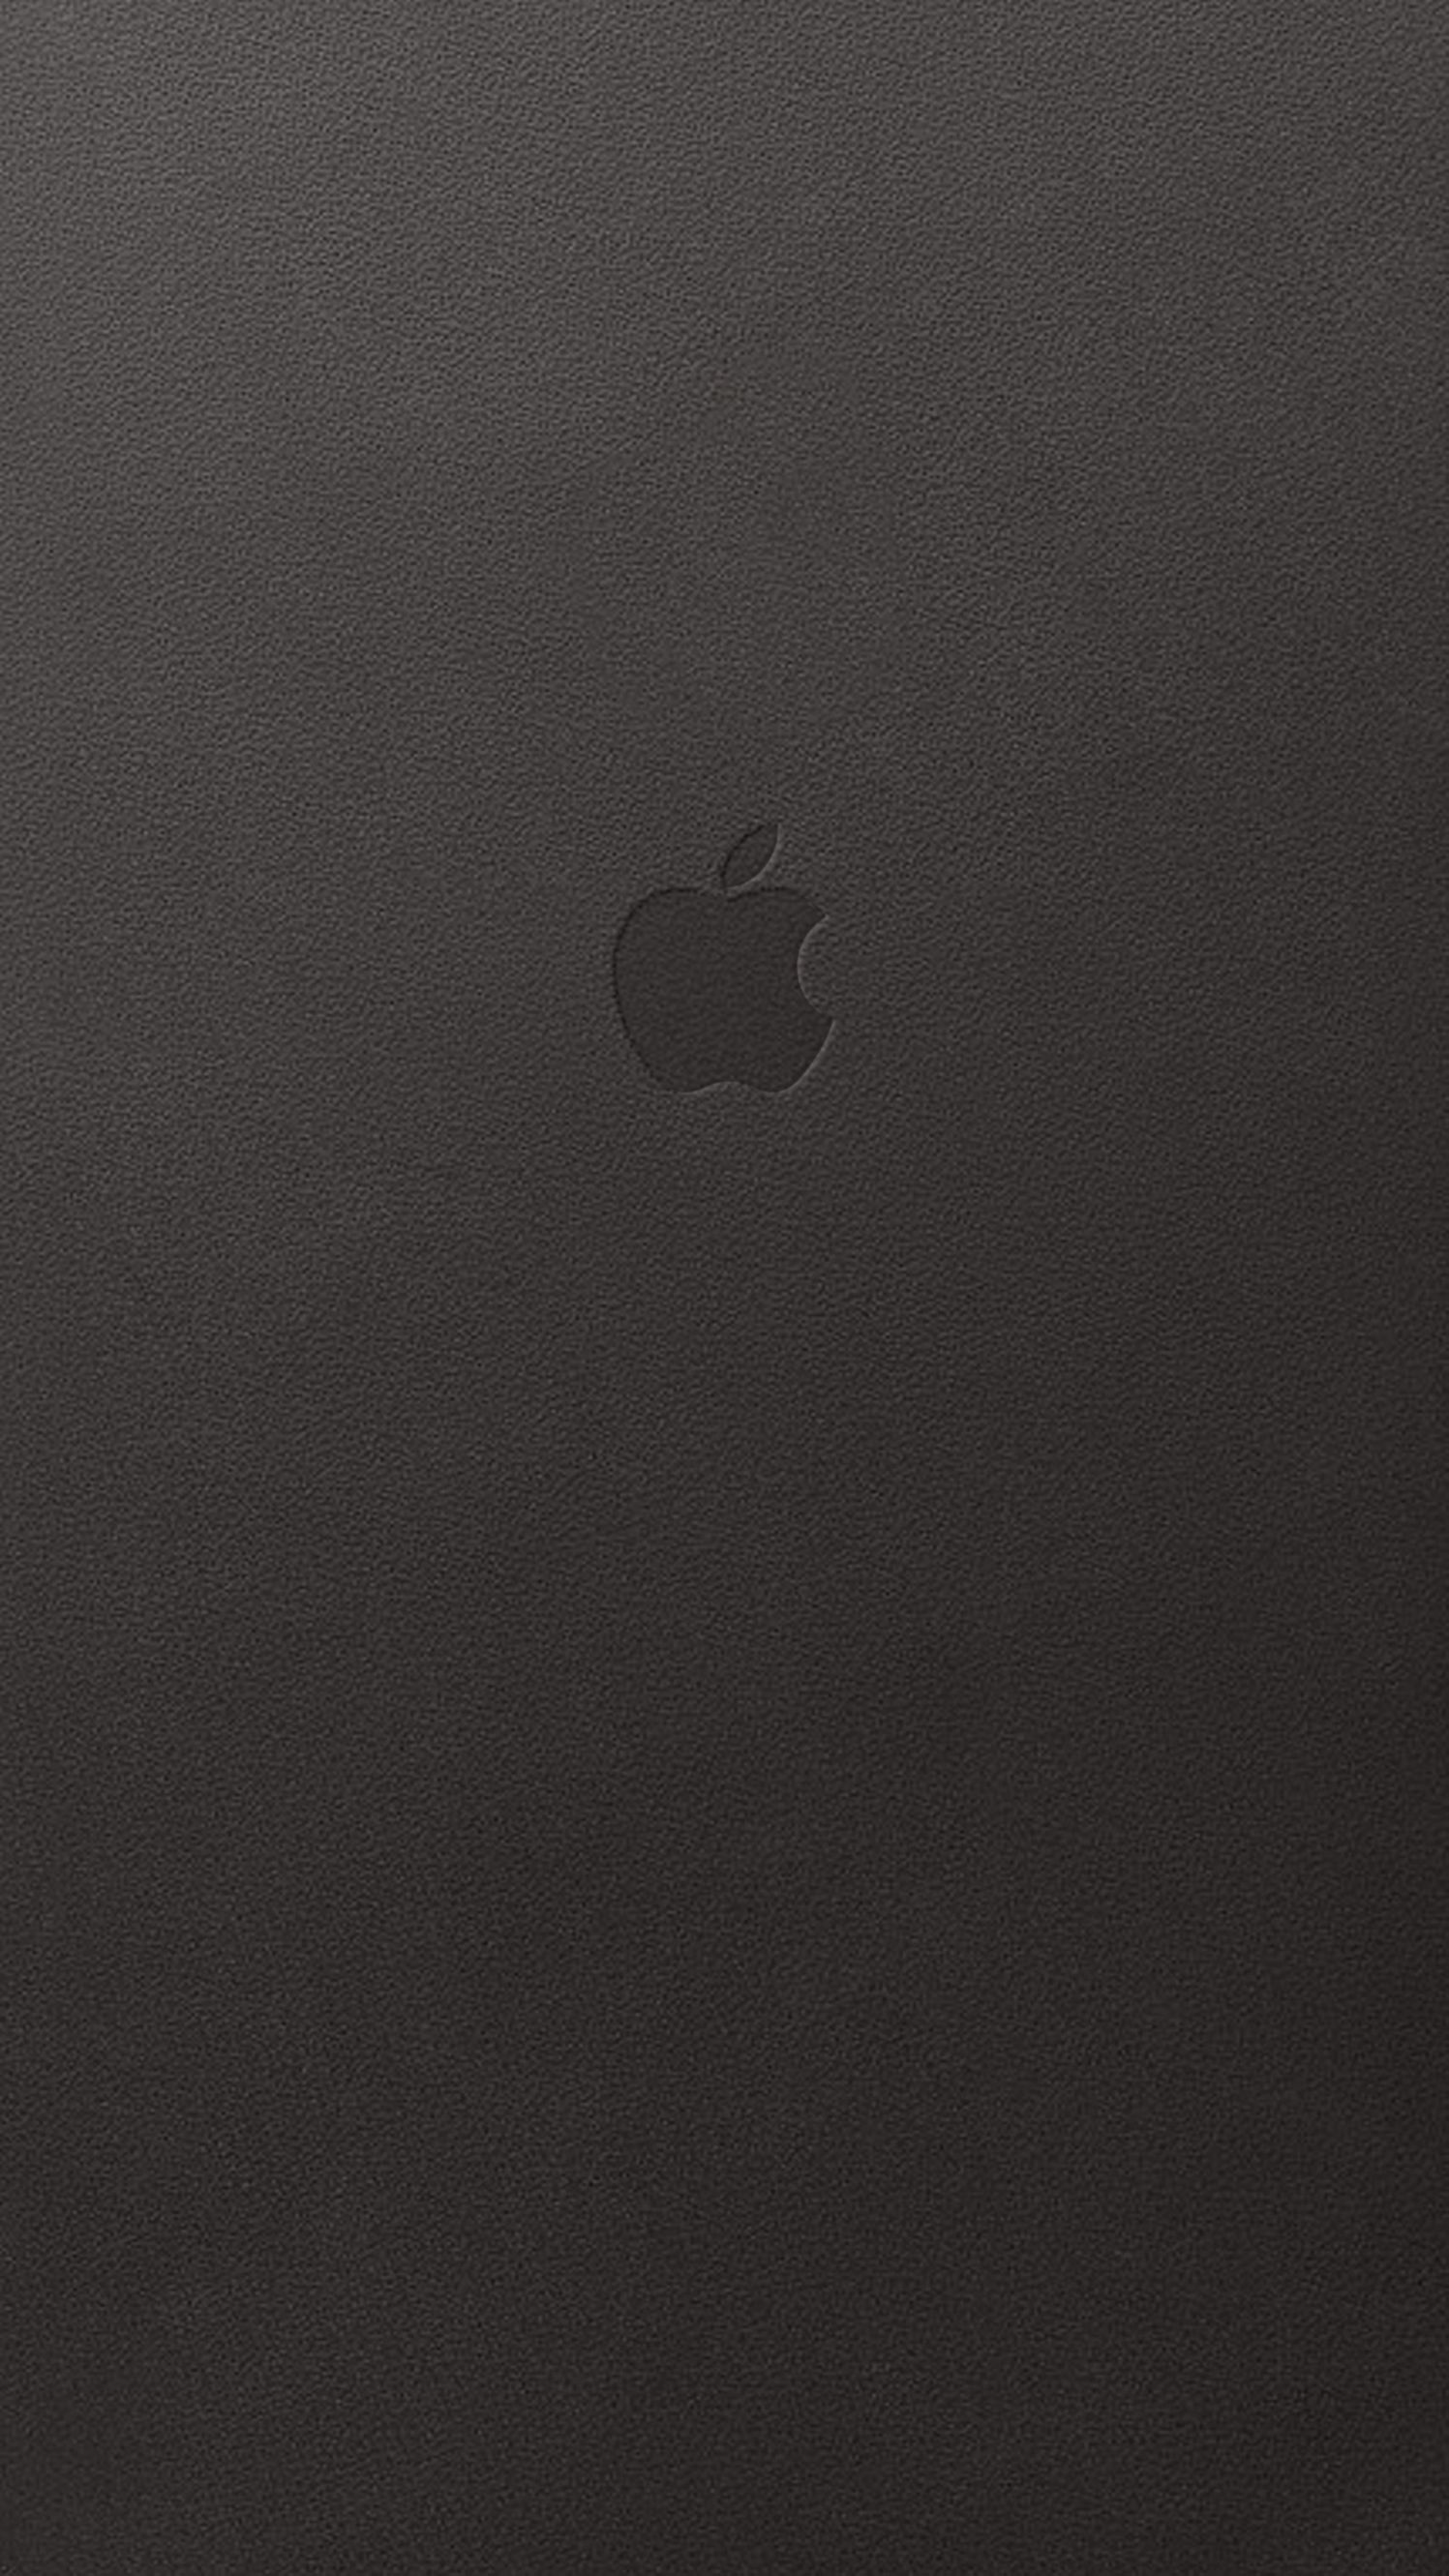 1497x2662 35+ Leather iPhone Wallpapers - Download at WallpaperBro